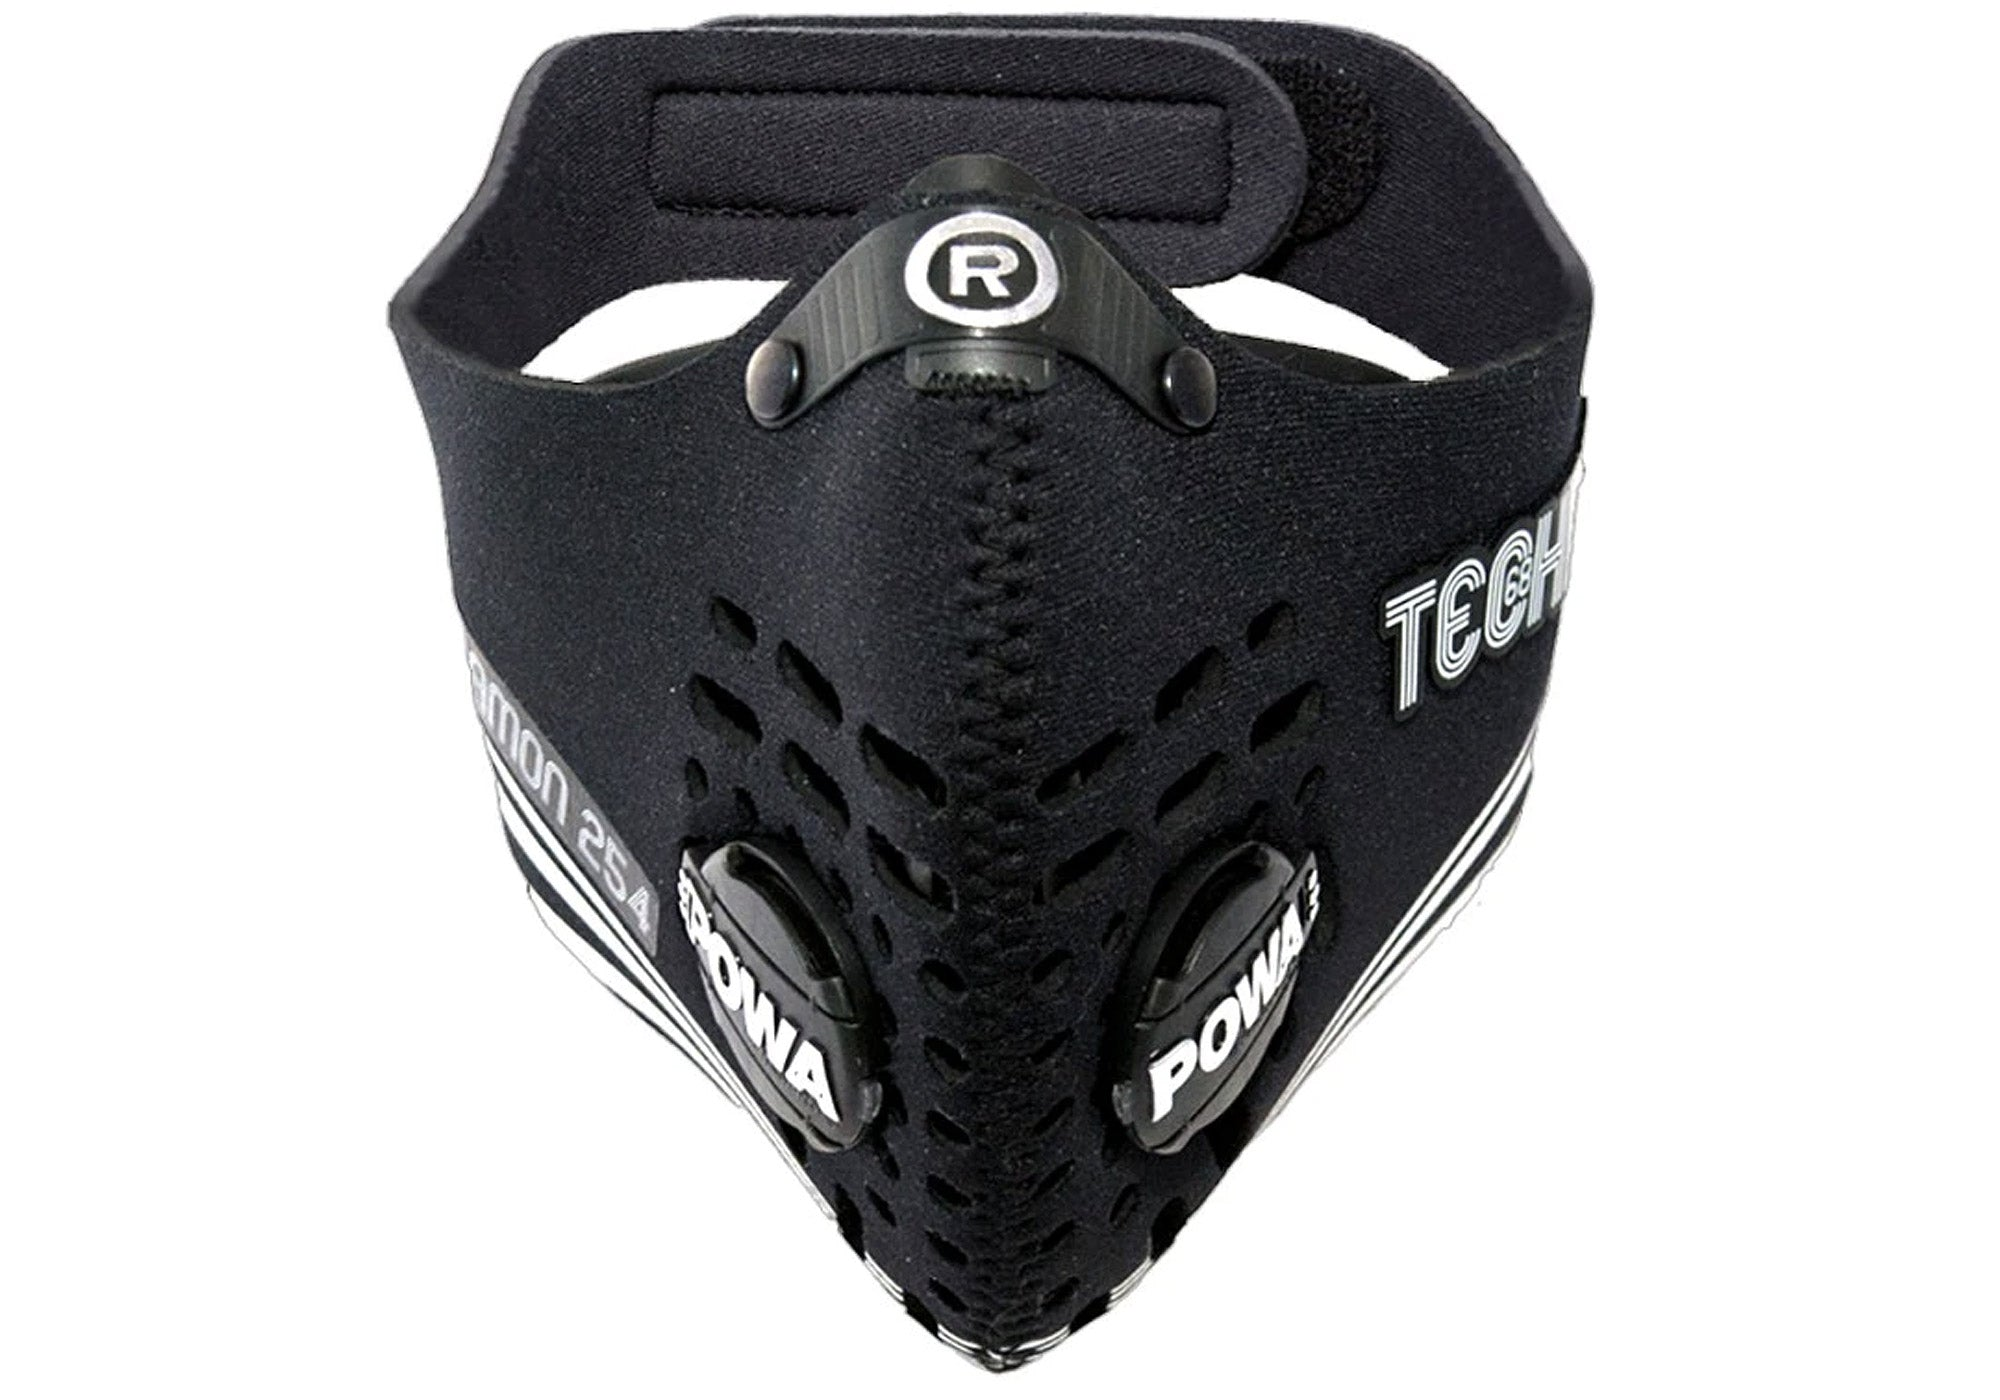 Respro Tecno Plus Mask Mary J With Combi Filter & Proseal, Medium Woolys Wheels Sydney